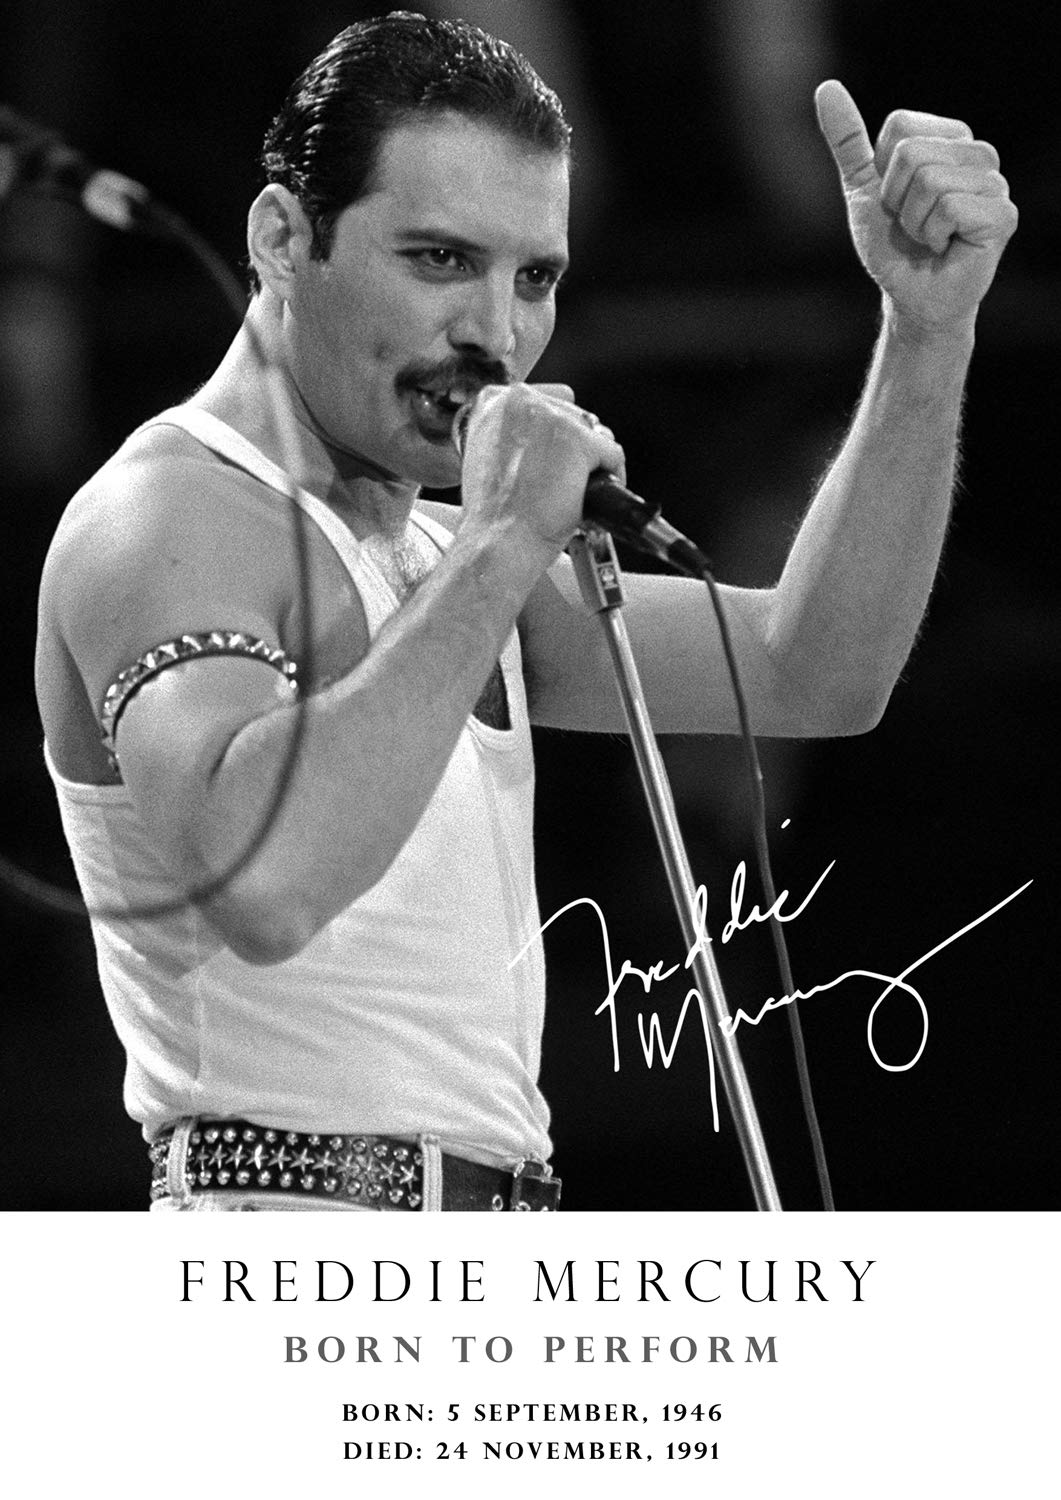 Freddie Mercury Poster Classic Pose Tribute Signed Copy 33 Born 5 September 1946 Died 24 November 1991 Queen Music Icon Legend A3 Poster Print Picture Buy Online In Turkey At Turkey Desertcart Com 50486666